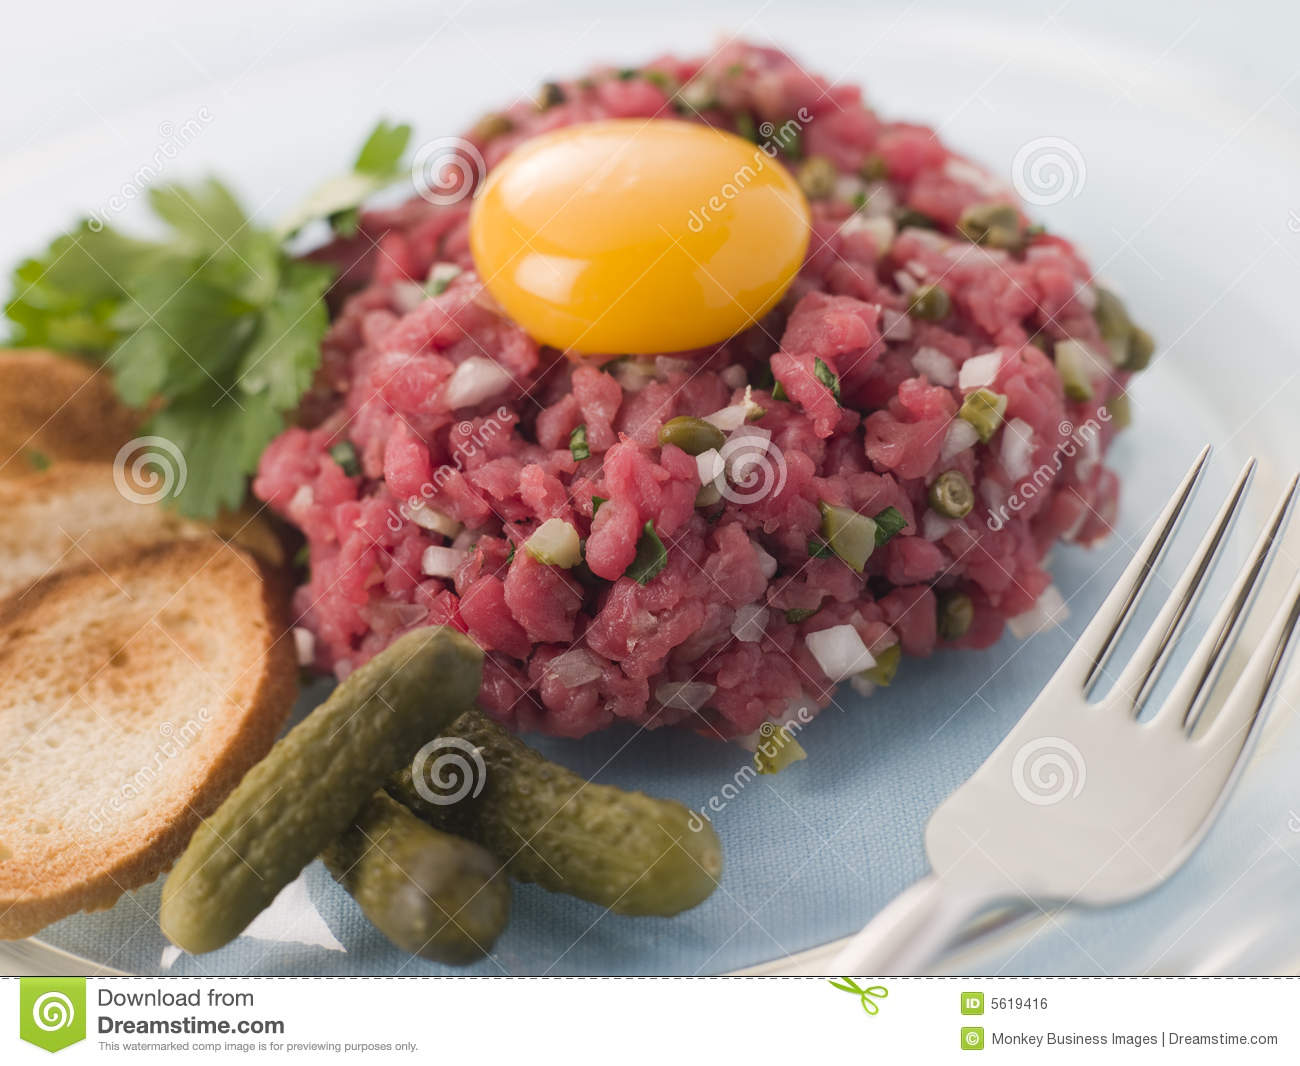 Steak Tartare with Cornichons, Croutons and an Egg